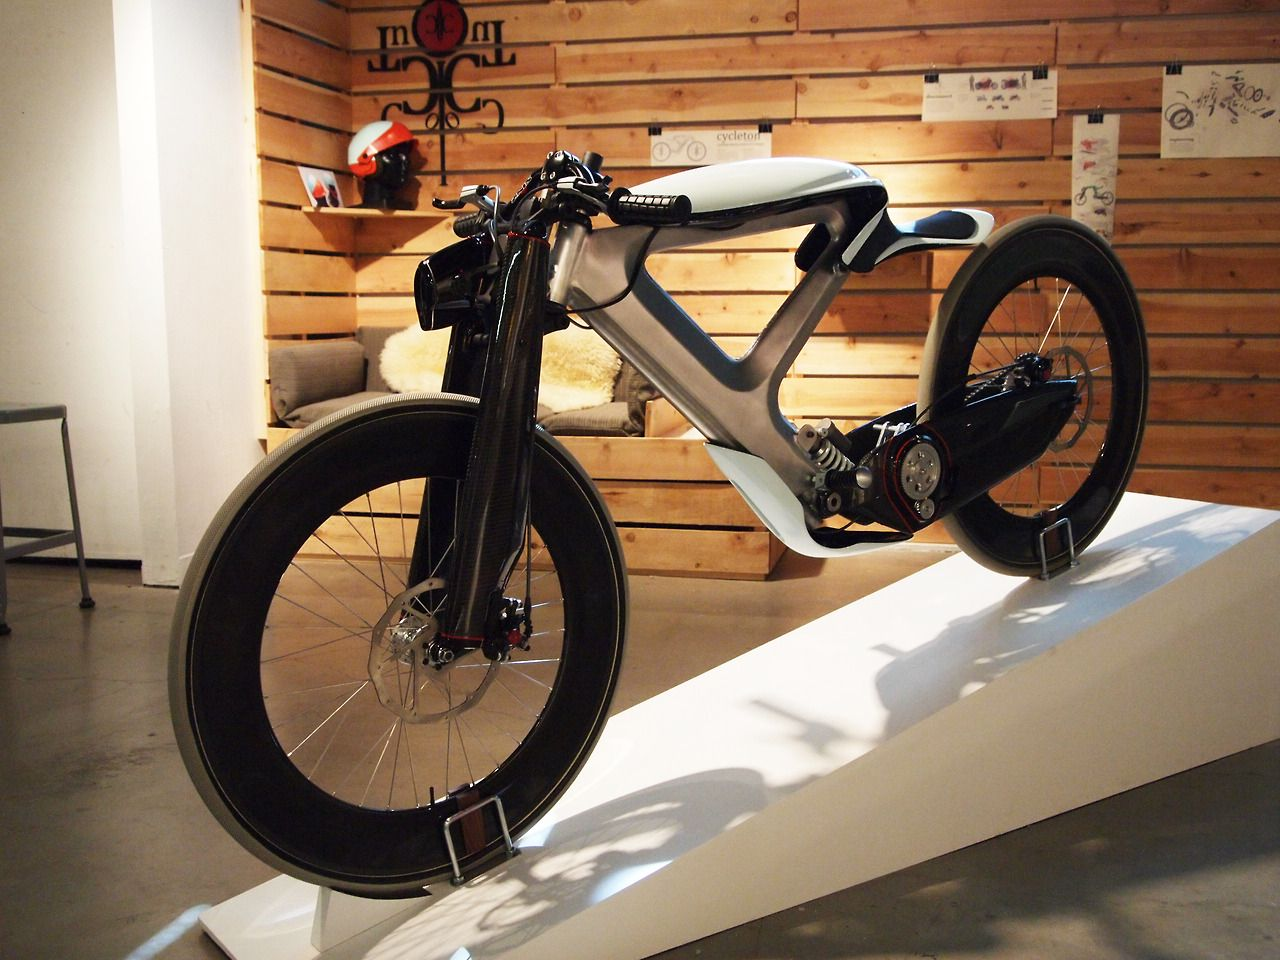 510 Best Bikes Electric Images On Pinterest Car Bike Ideas And Cars